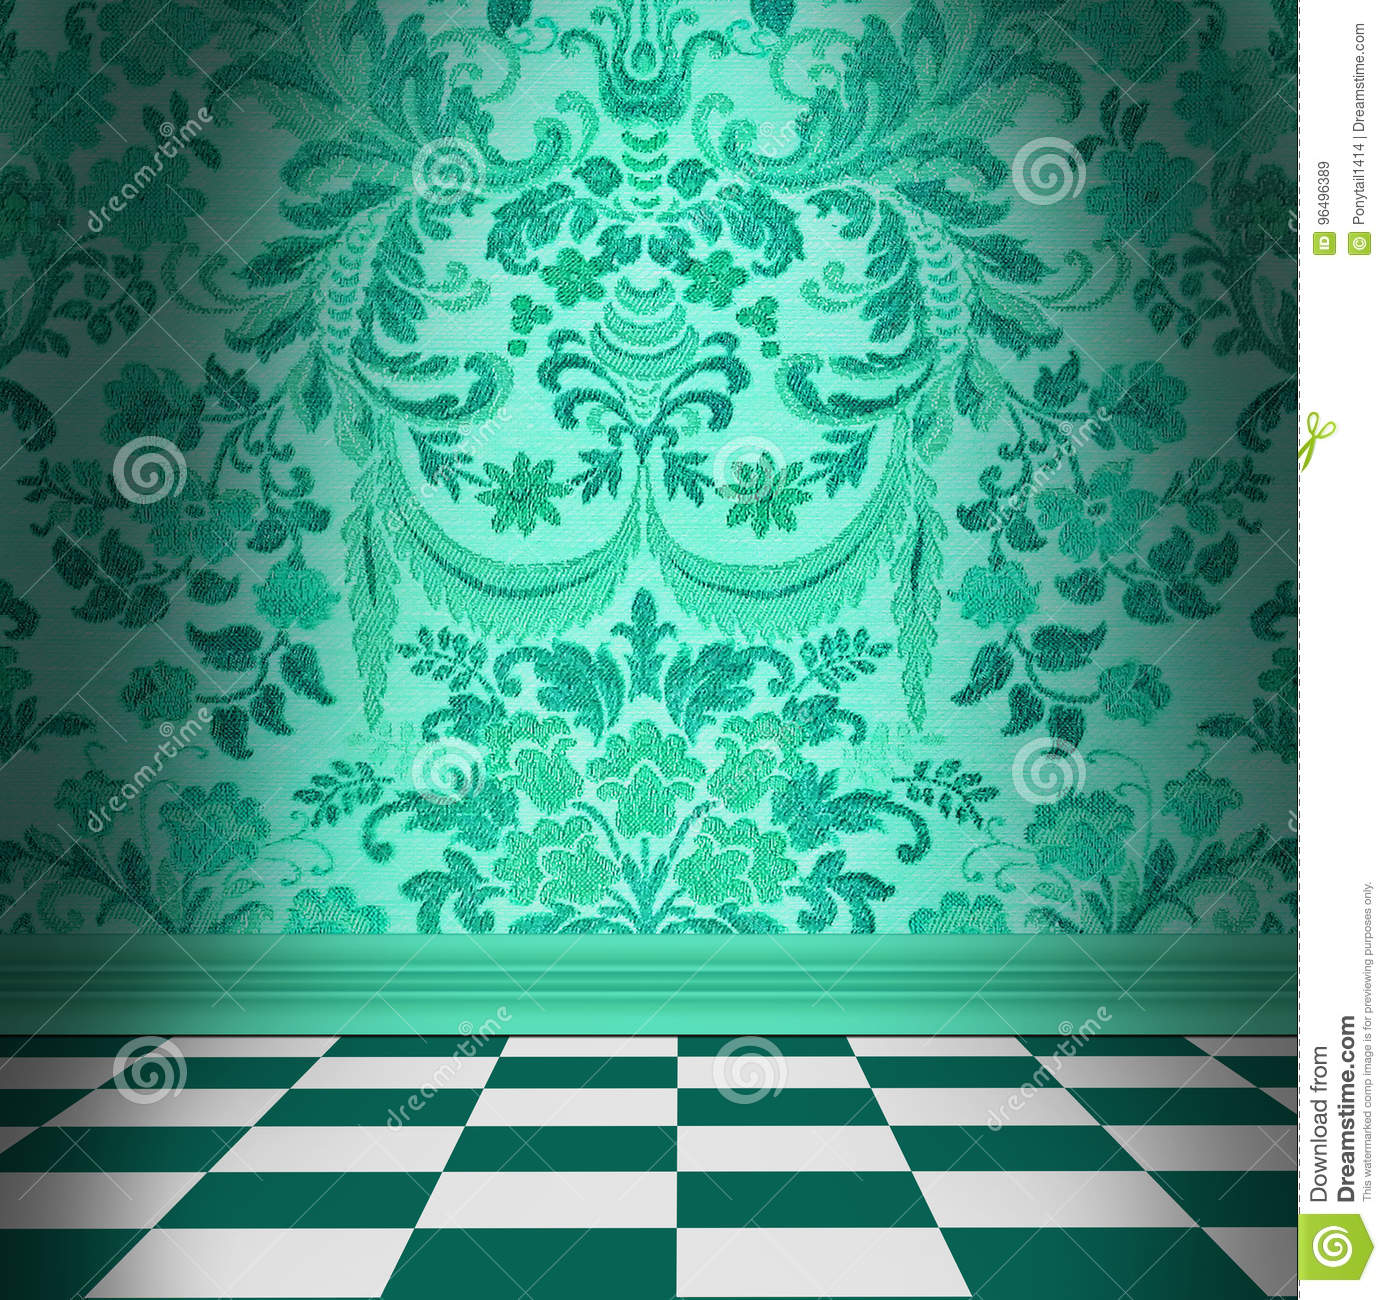 Aqua Green Damask Wallpaper With Black & White Checkerboard Tile